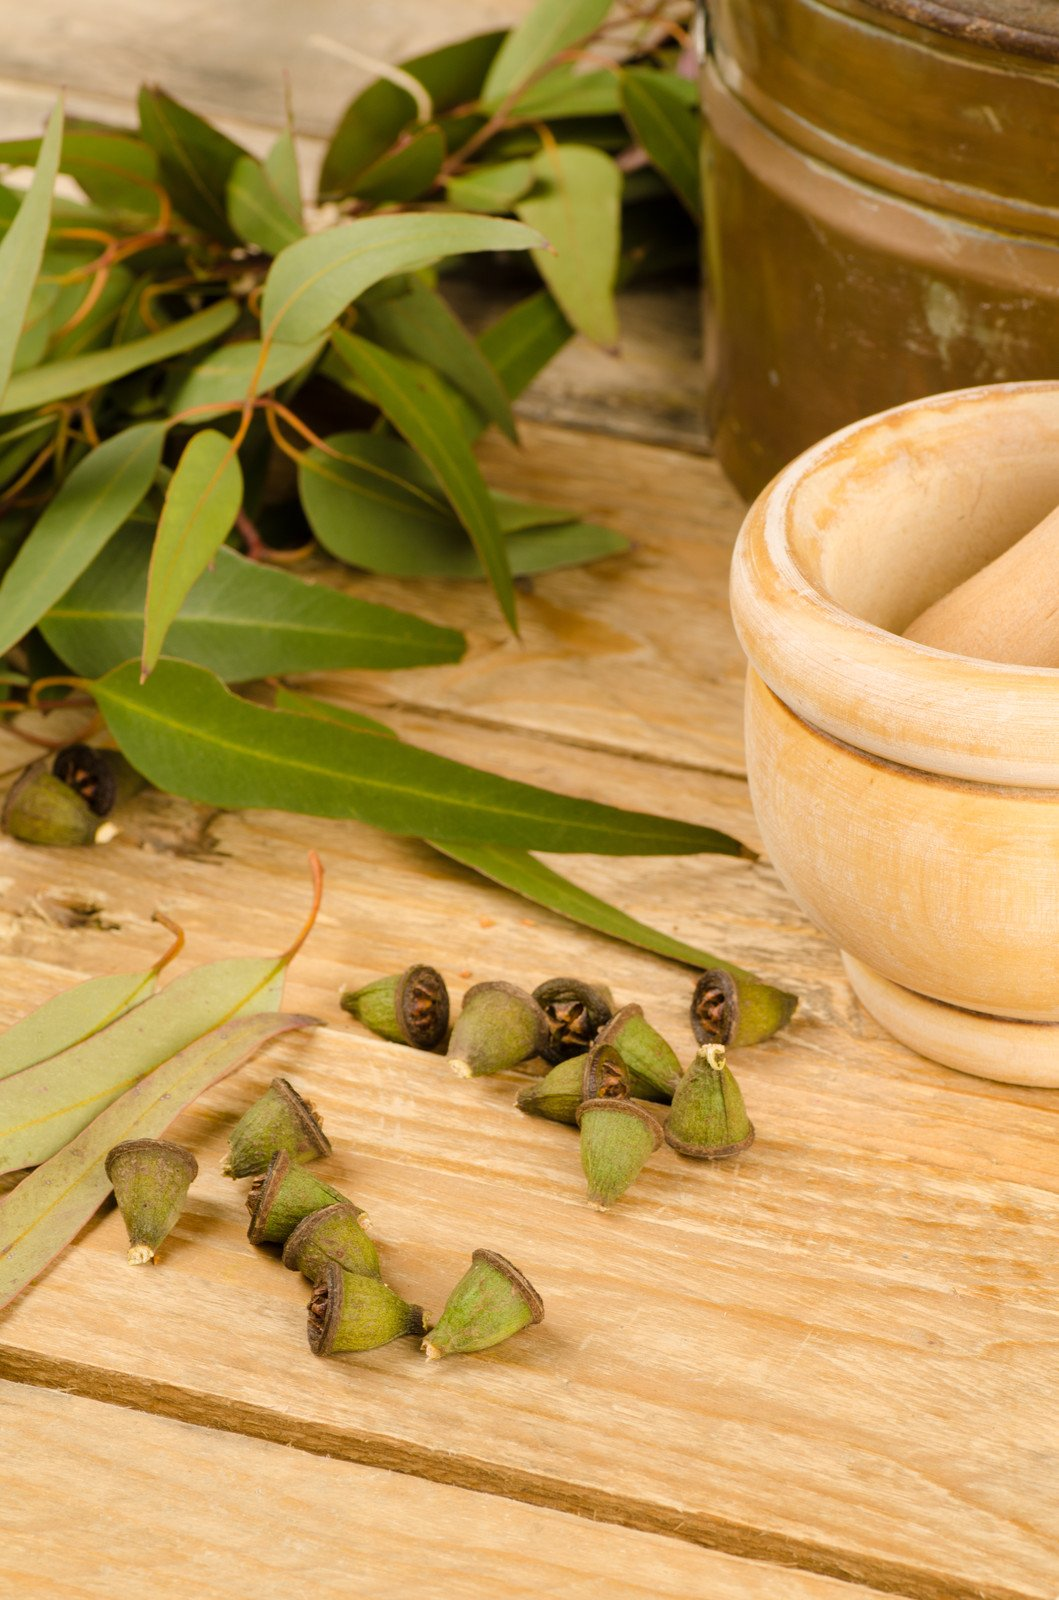 100% Pure Eucalyptus Globulus Essential Oil. Best for Aromatherapy, colds, chest rub, cough, congestion, sinus, cleaning, dust mites, joint & muscle pain, sauna & more. FREE ebook ''Benefits and Uses''